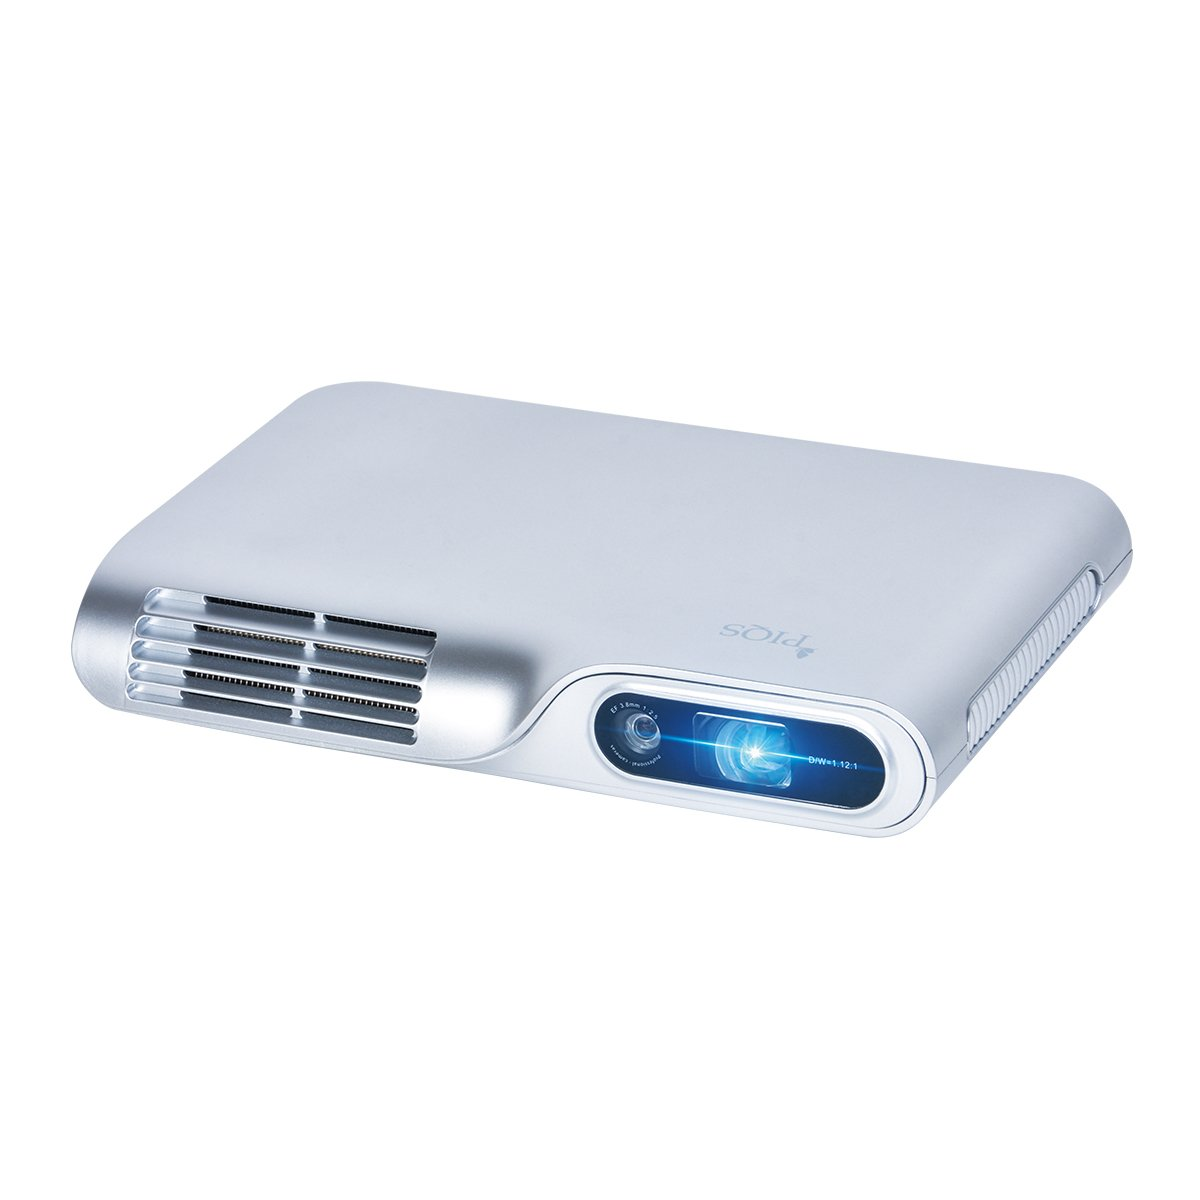 PIQS TT Virtual Touch Portable Projector, DLP Home Theater Mini Projector Support 1080P, WiFi, Bluetooth,with Autofocus/Keystone, 3-hour battery, for Business PPT, Home Cinema & Backyard Projection